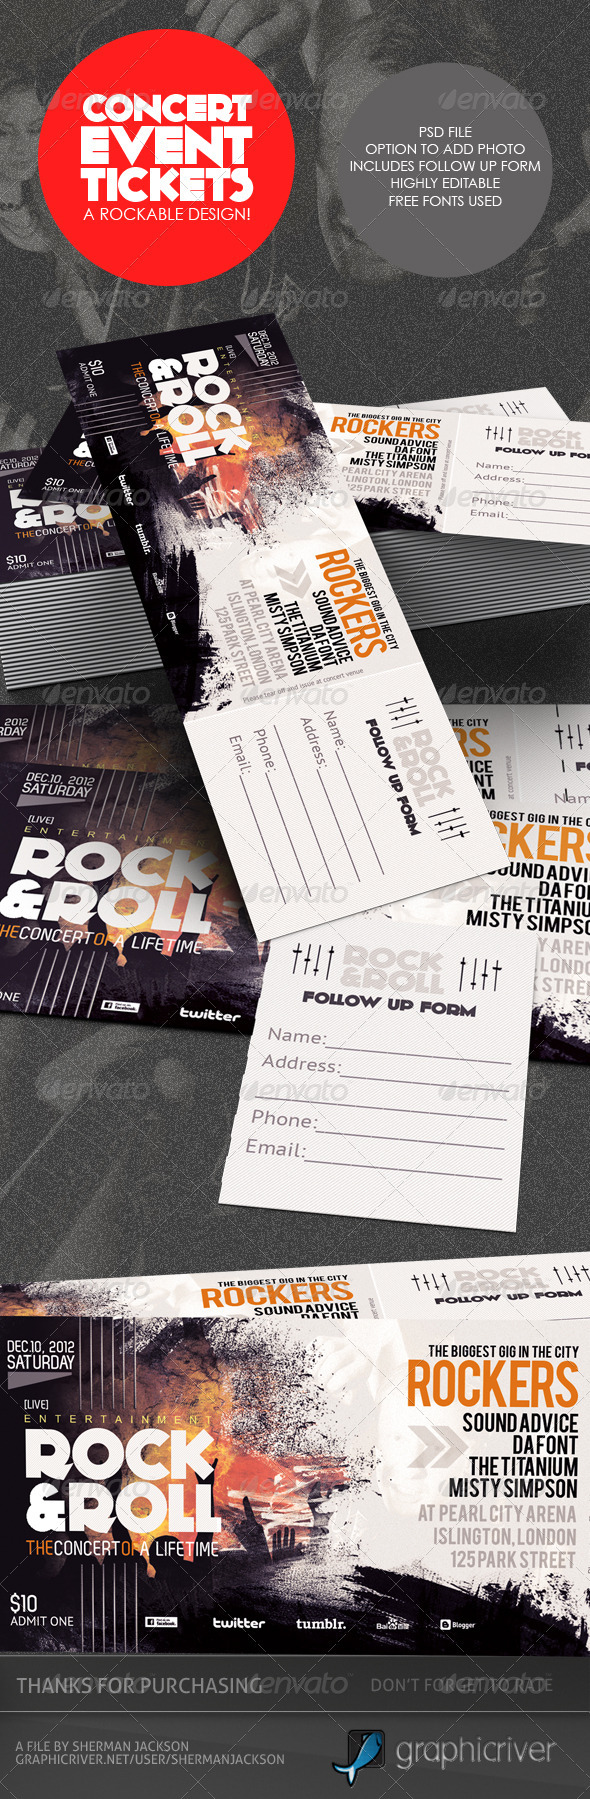 Event Ticket Designs Graphics Designs Templates